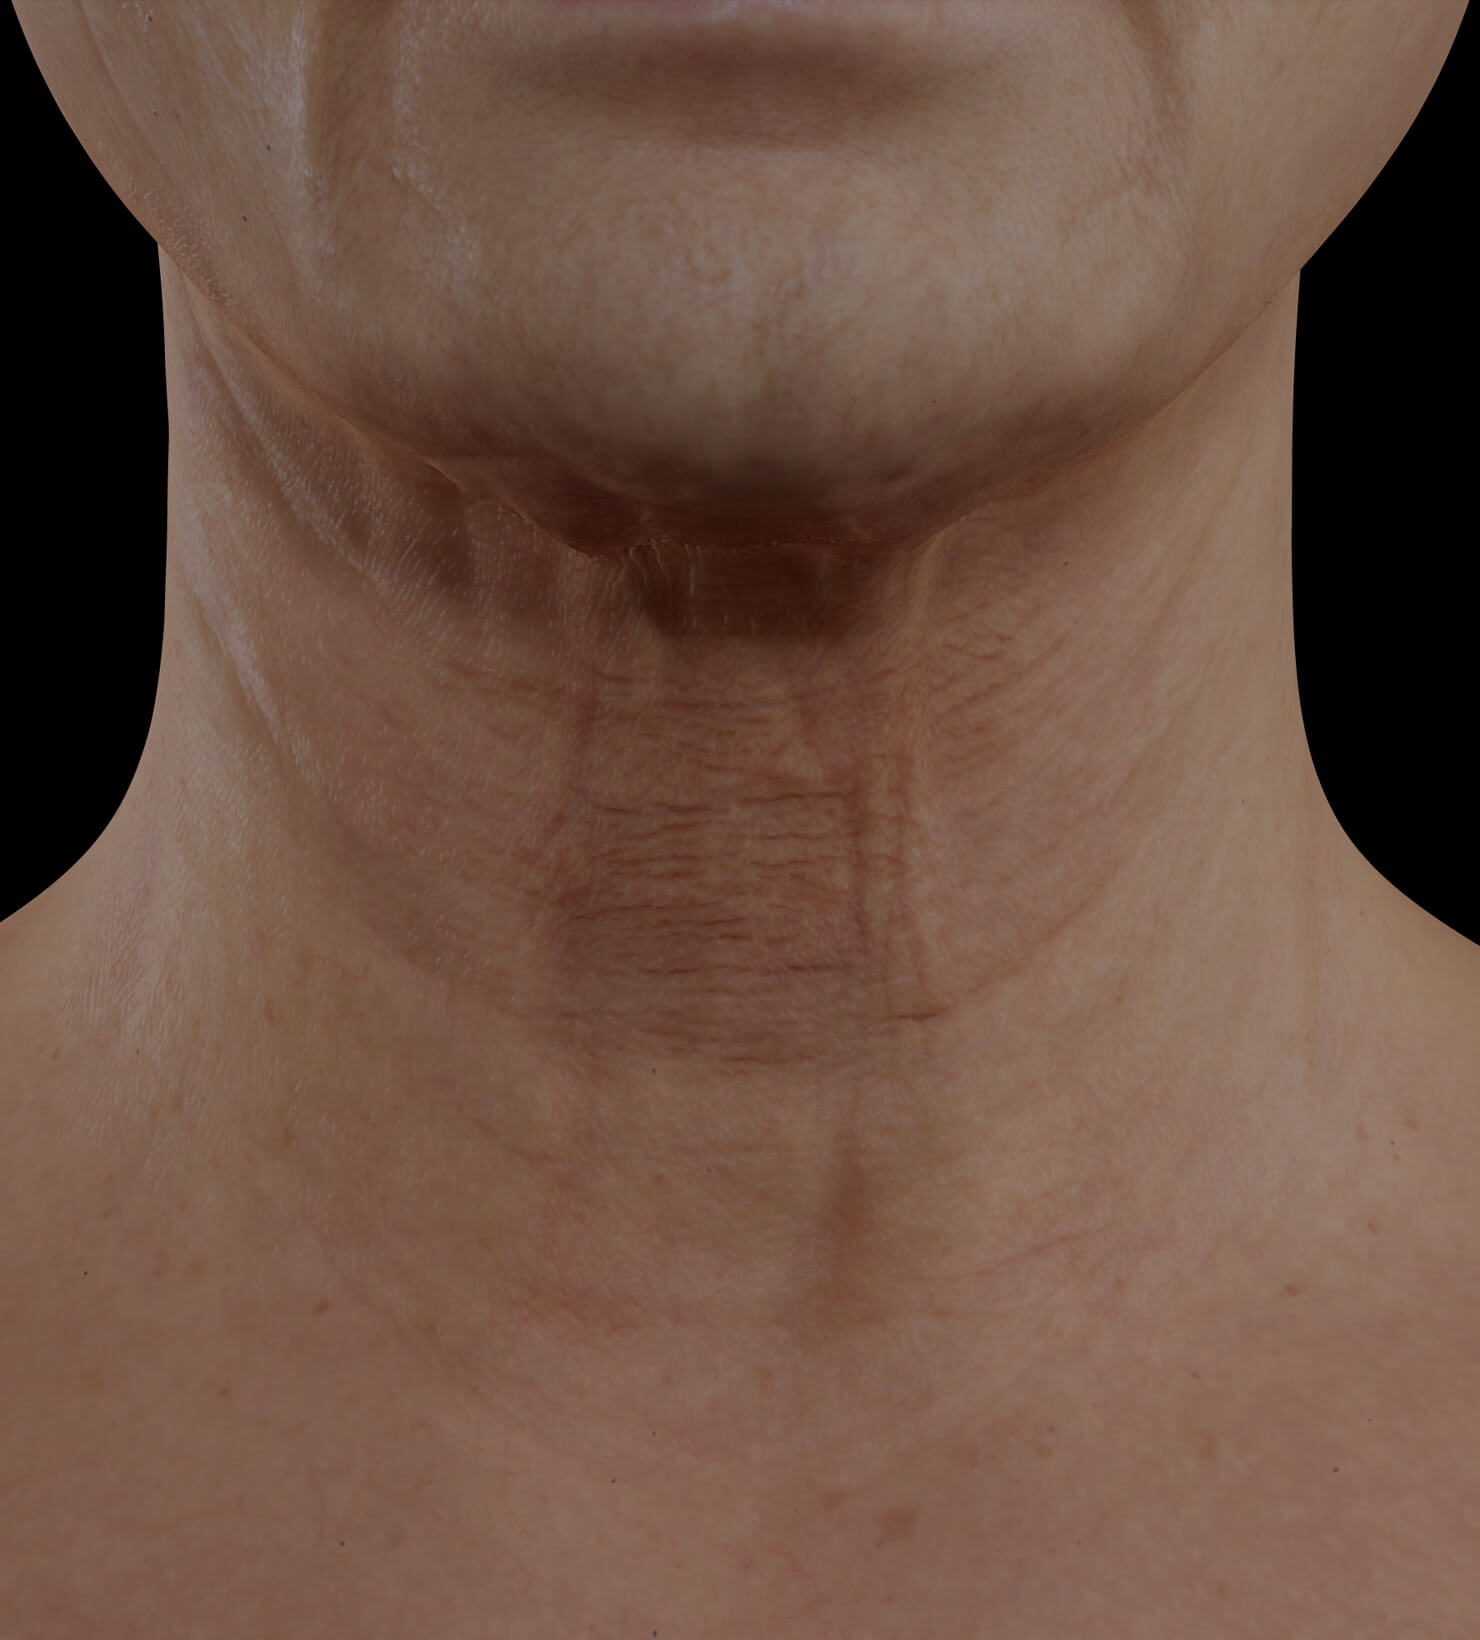 Clinique Chloé female patient with neck skin laxity treated with the fractional laser for neck skin tightening